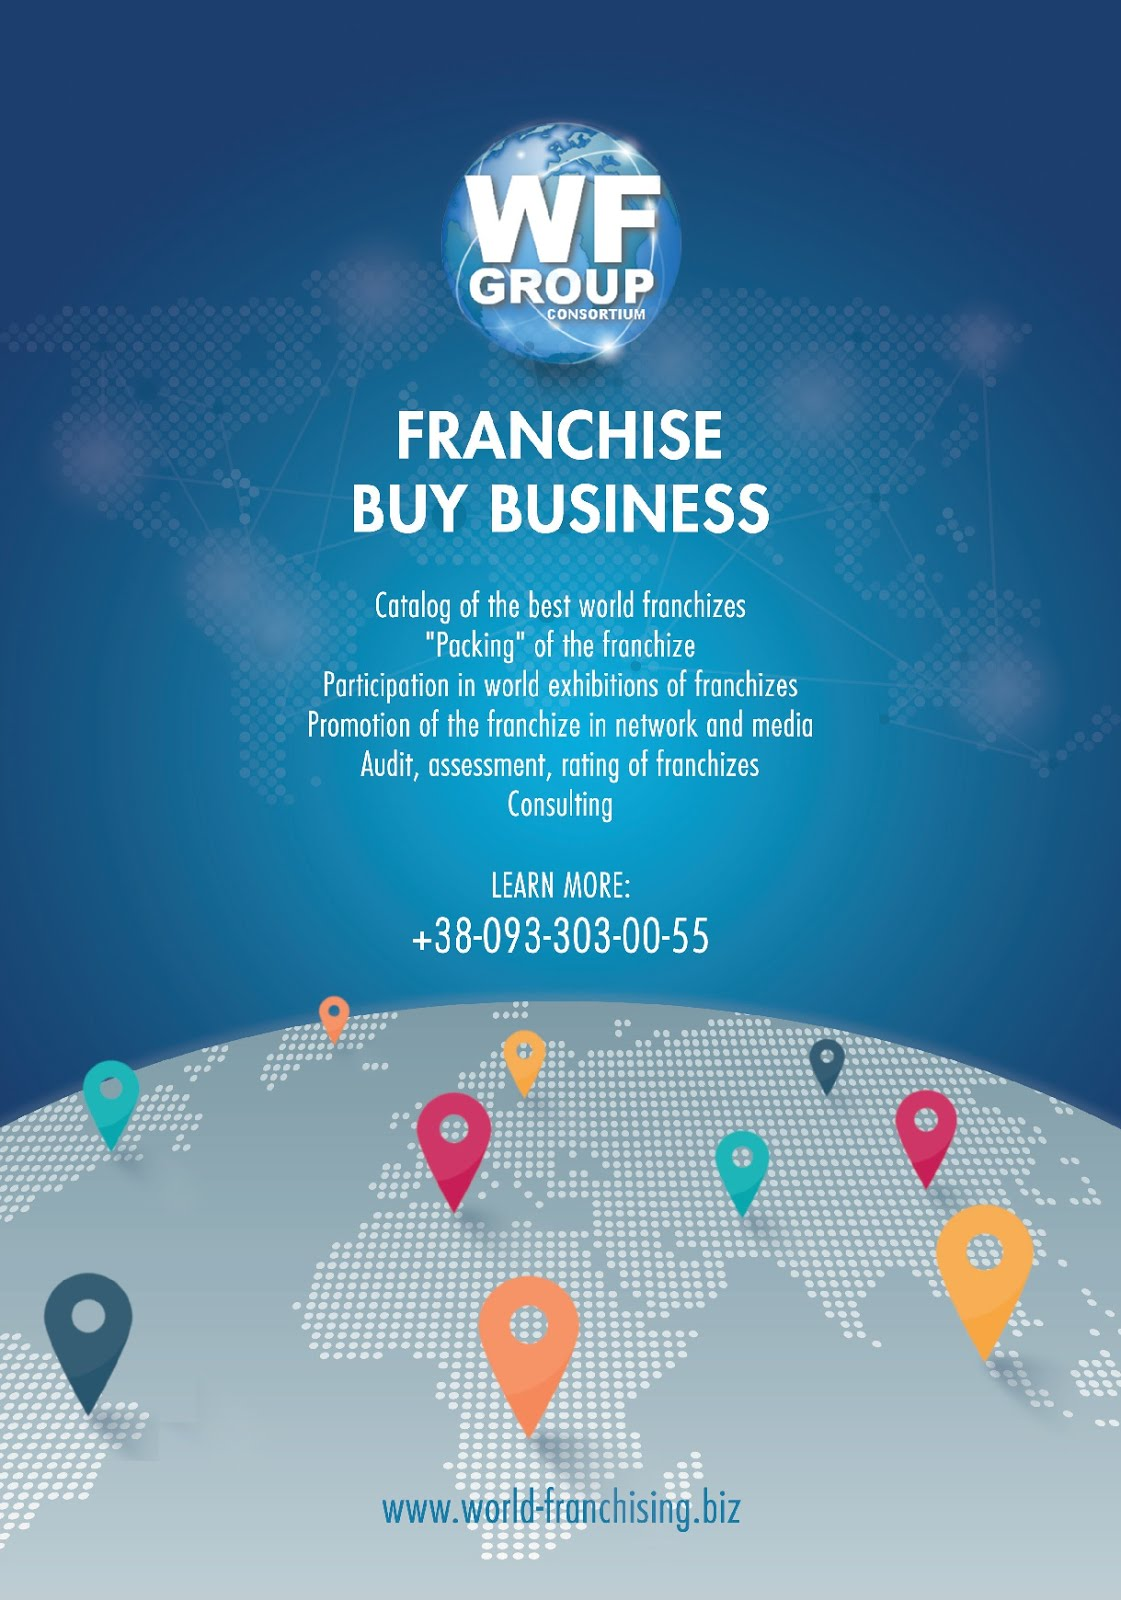 FRANCHISE BUY BUSINESS